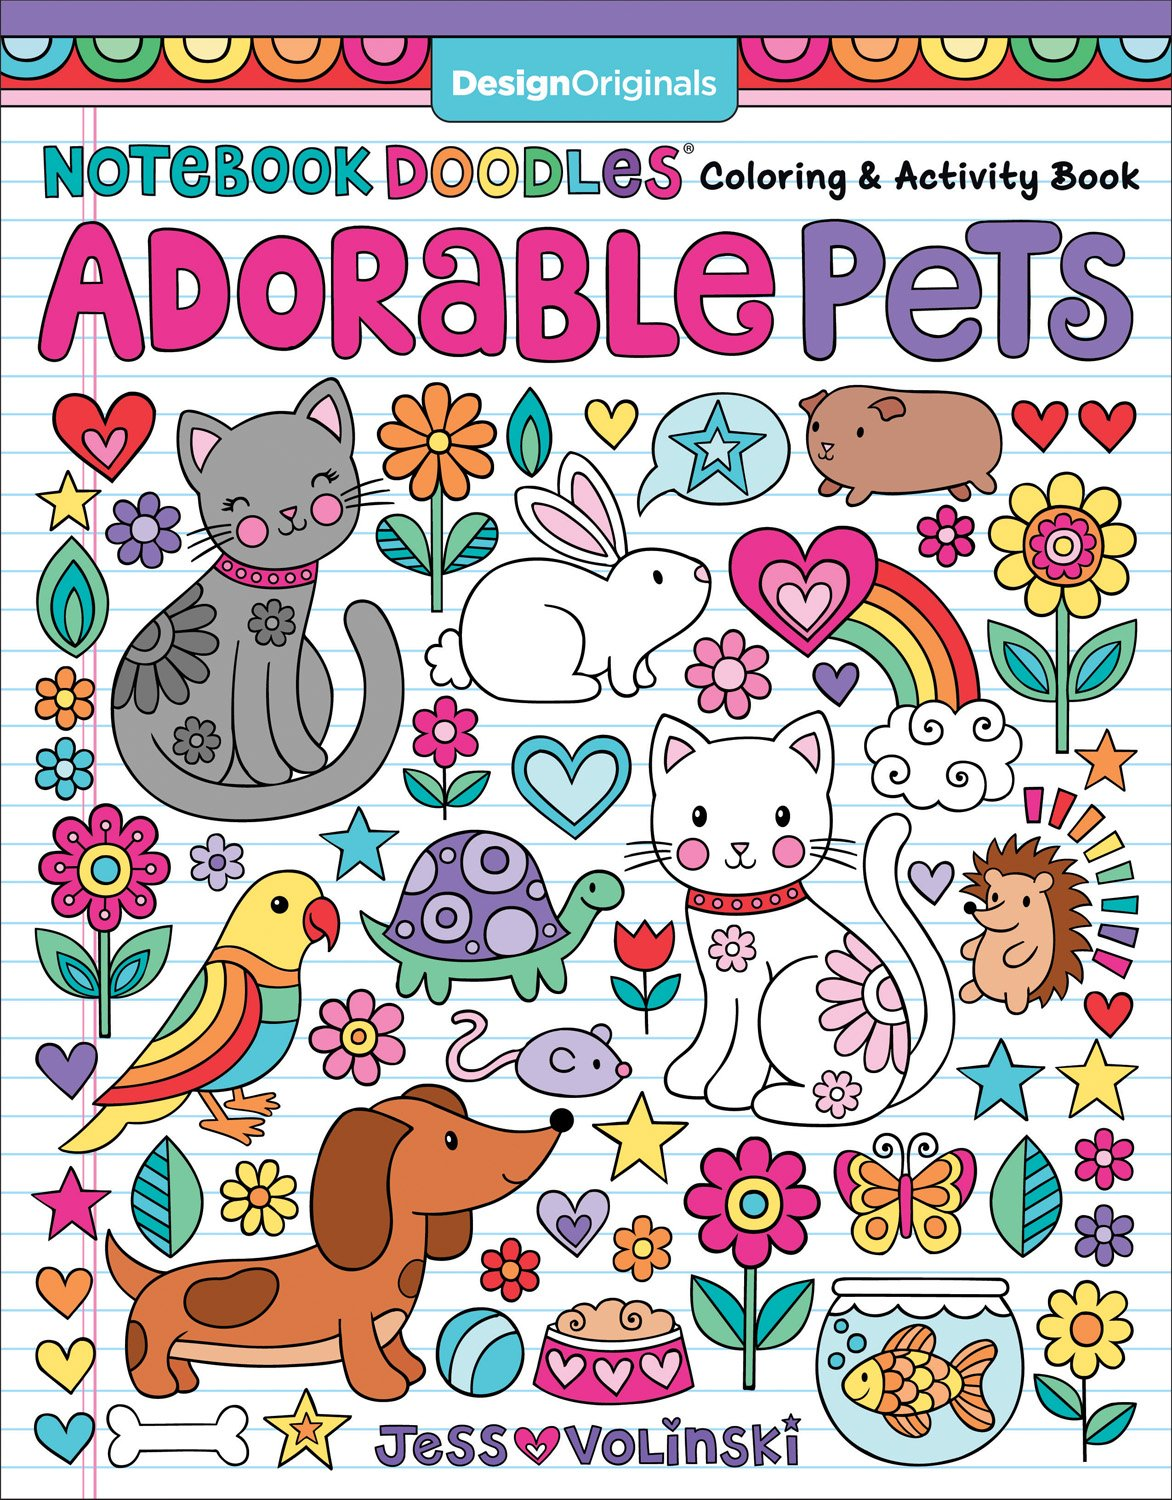 Notebook Doodles Adorable Pets Activities product image